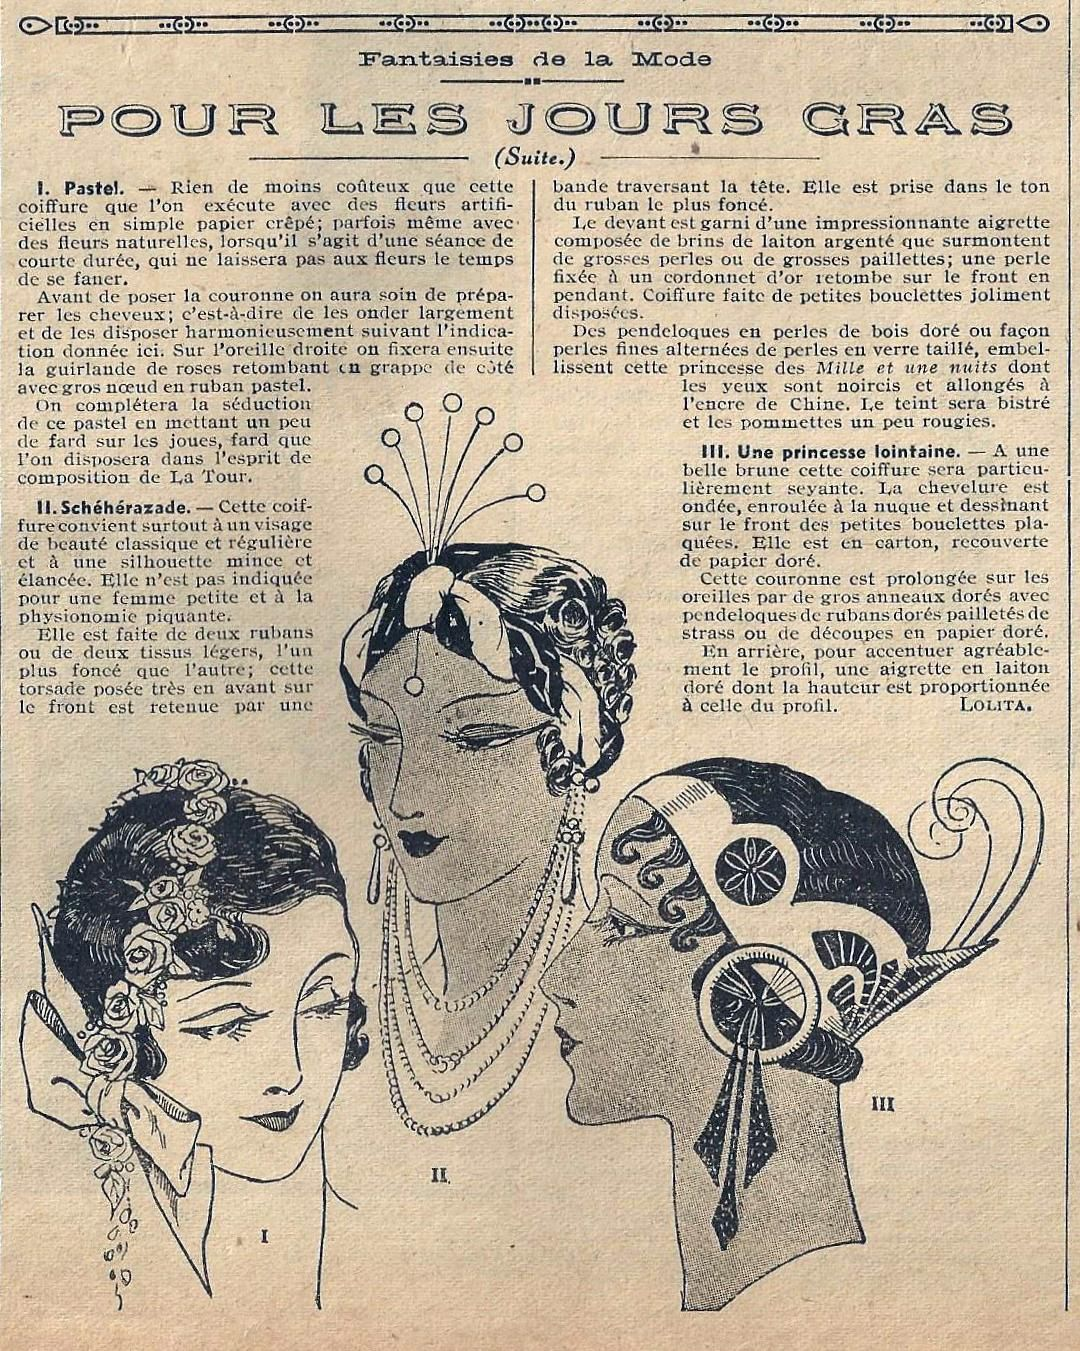 Art Deco French Newspaper article on hairstyles and headdresses - Roaring 20s #vintage #vintagefashion @Rue Mapp Marcellin Check out ruemarcellin.com for original vintage posters and prints